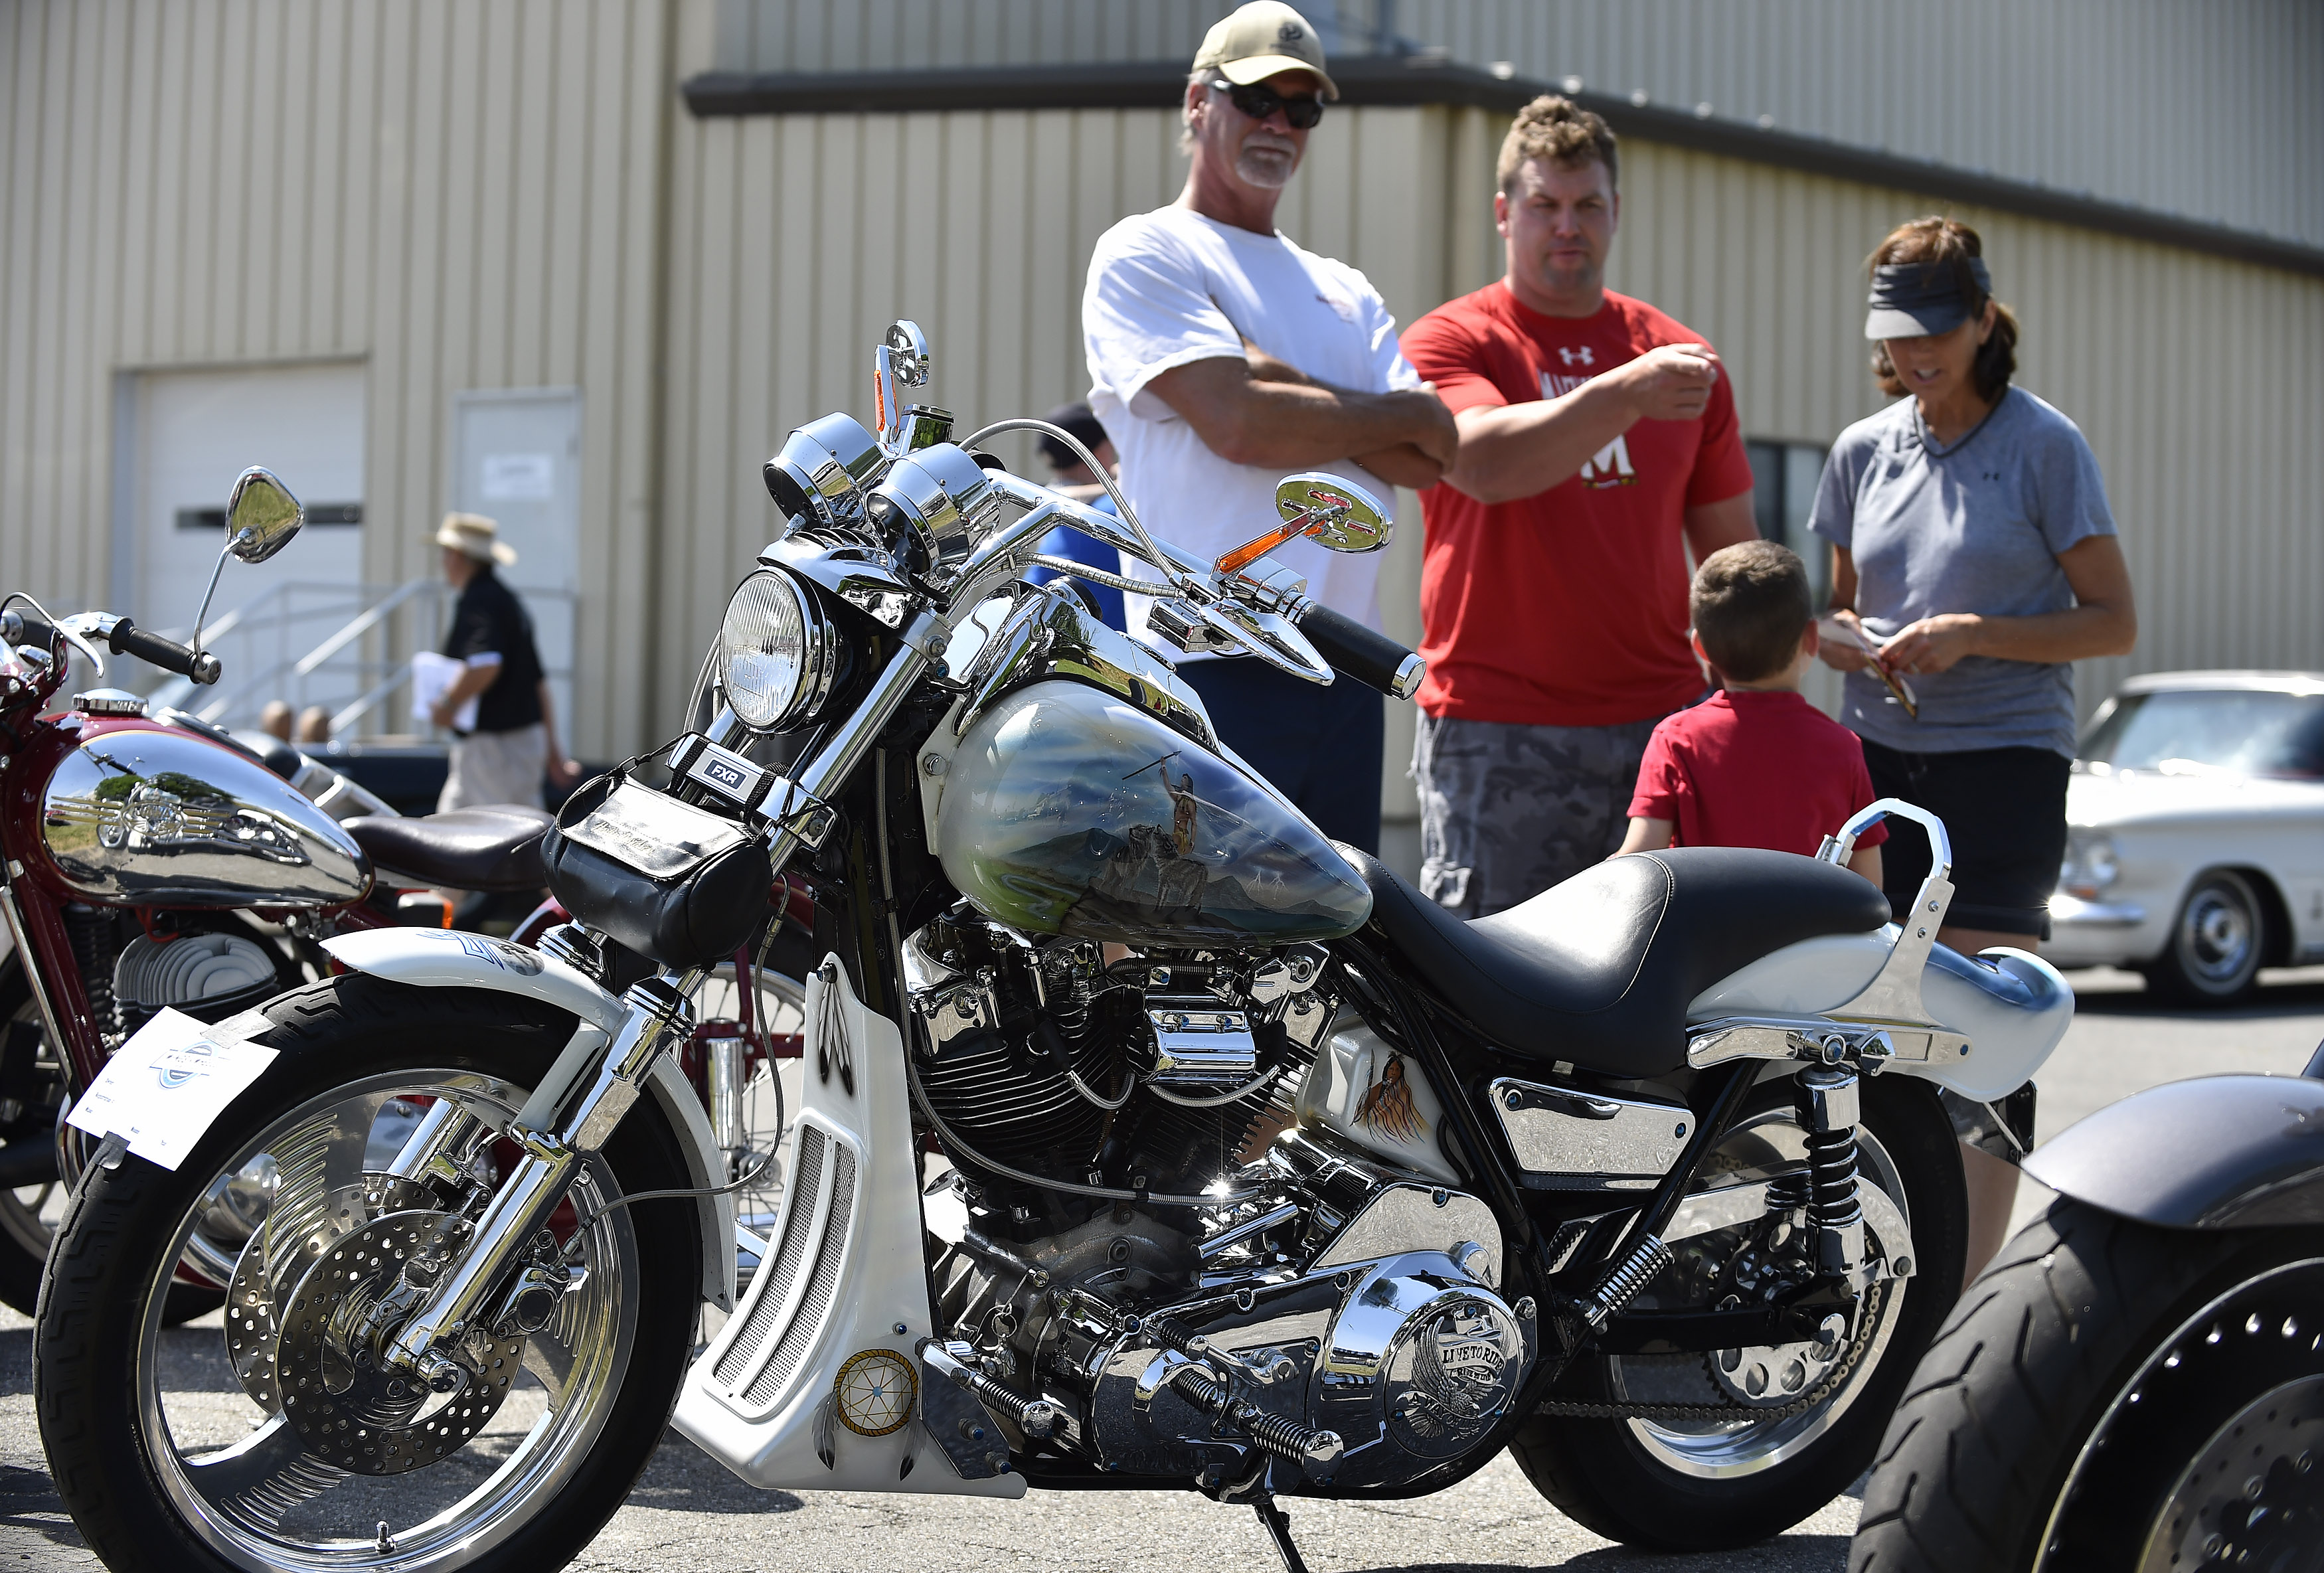 A Harley-Davidson named 'Tator' was the best-in-show motorcycle winner during the Wings 'n Wheels showcase. Photo by David Tulis.